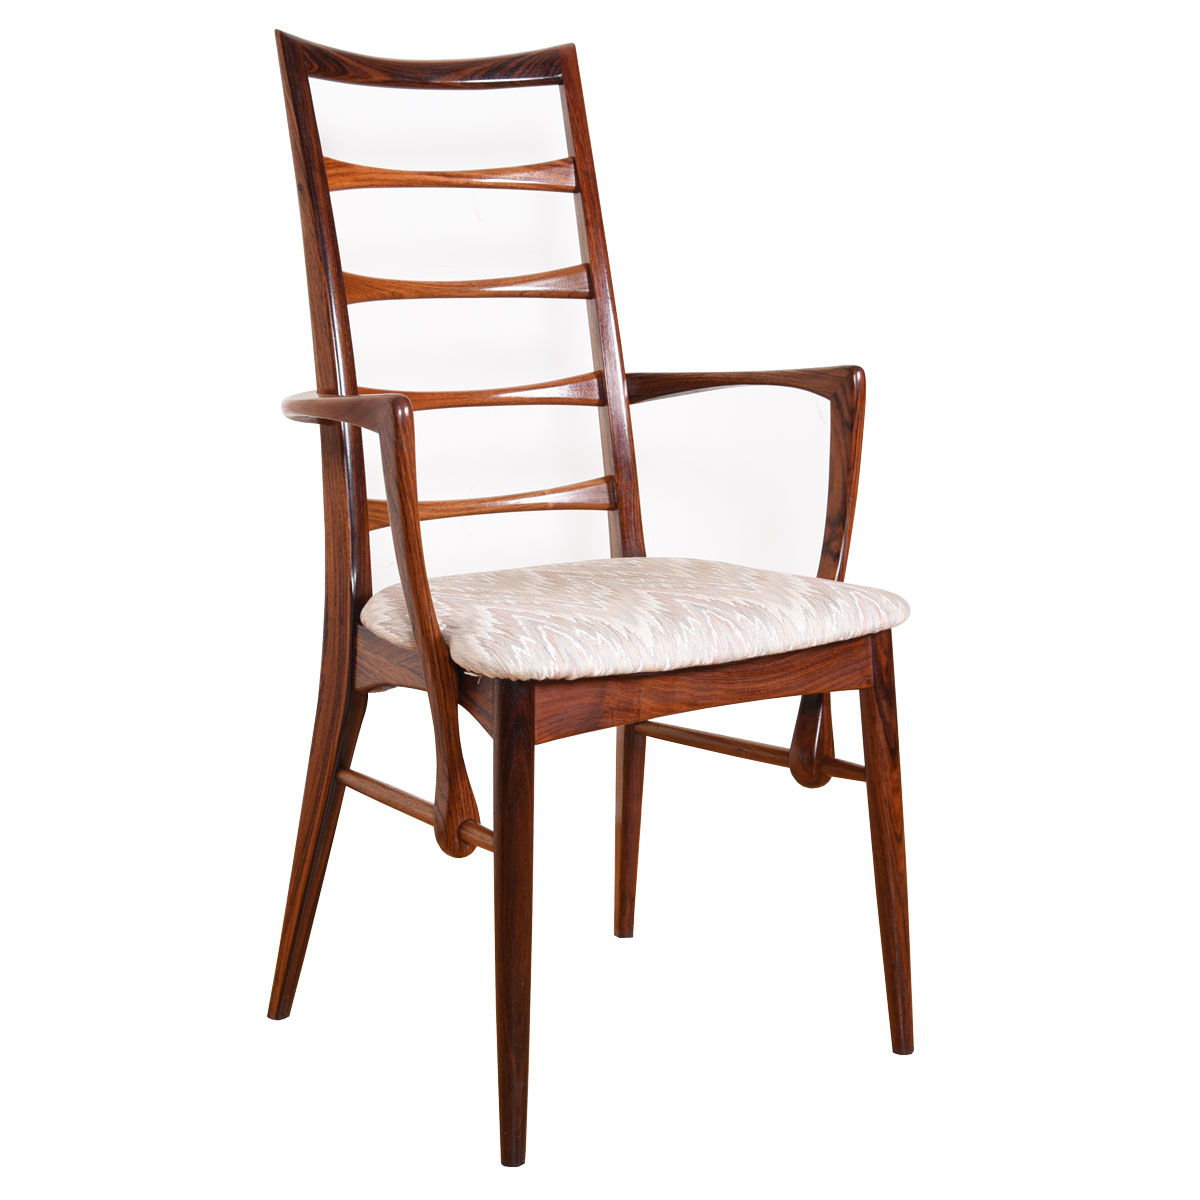 Set of 6 (2 Arm + 4 Side) Rosewood Dining Chairs by Koefoeds Hornslet